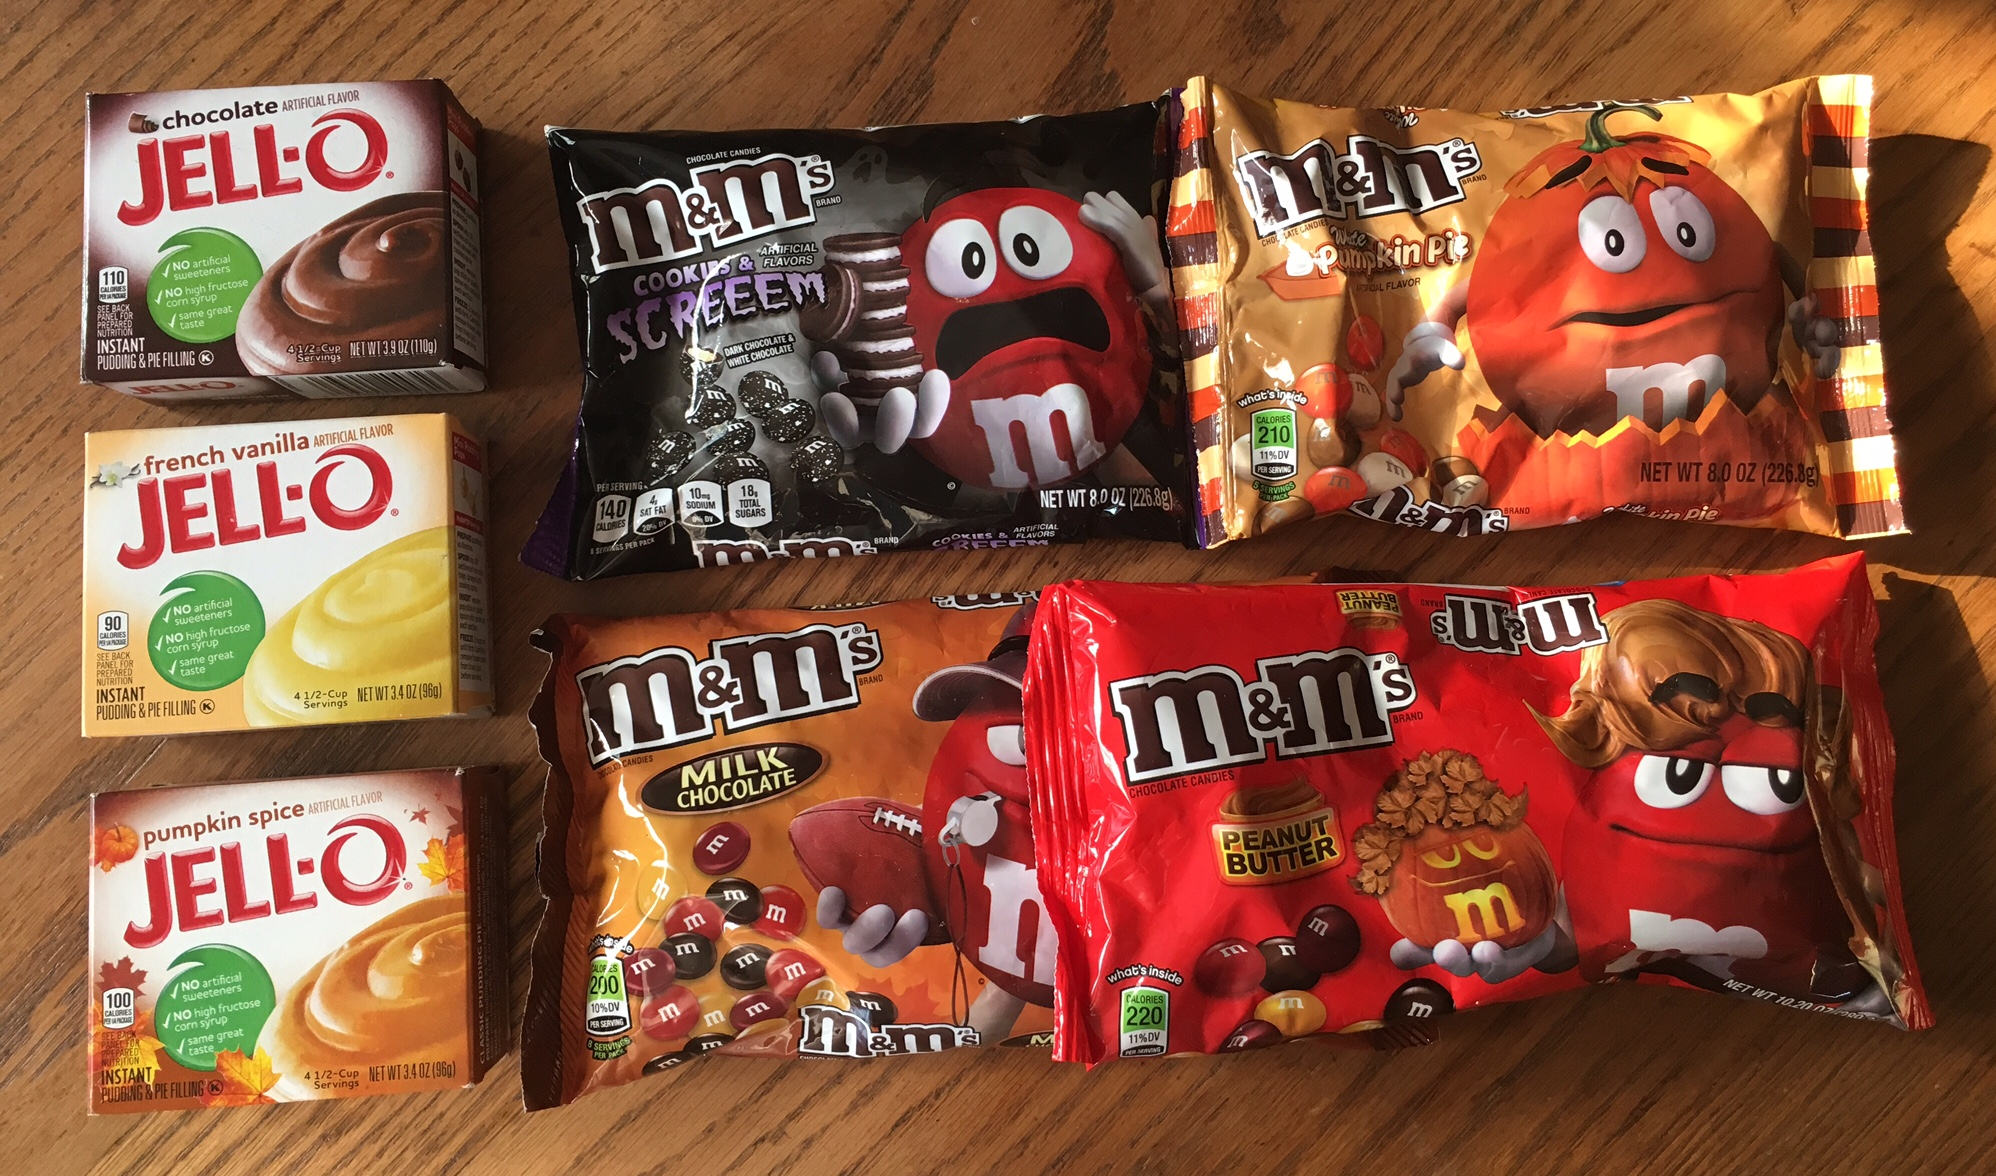 Amazing Fall options! Going to try the Pumpkin Spice Jello mix with White Chocolate Pumpkin M&Ms next! One thing to watch for - some packages of M&Ms are smaller than others. Buy two then to make sure the cookies have lots of M&M color and flavor, and save the rest for nibbling!